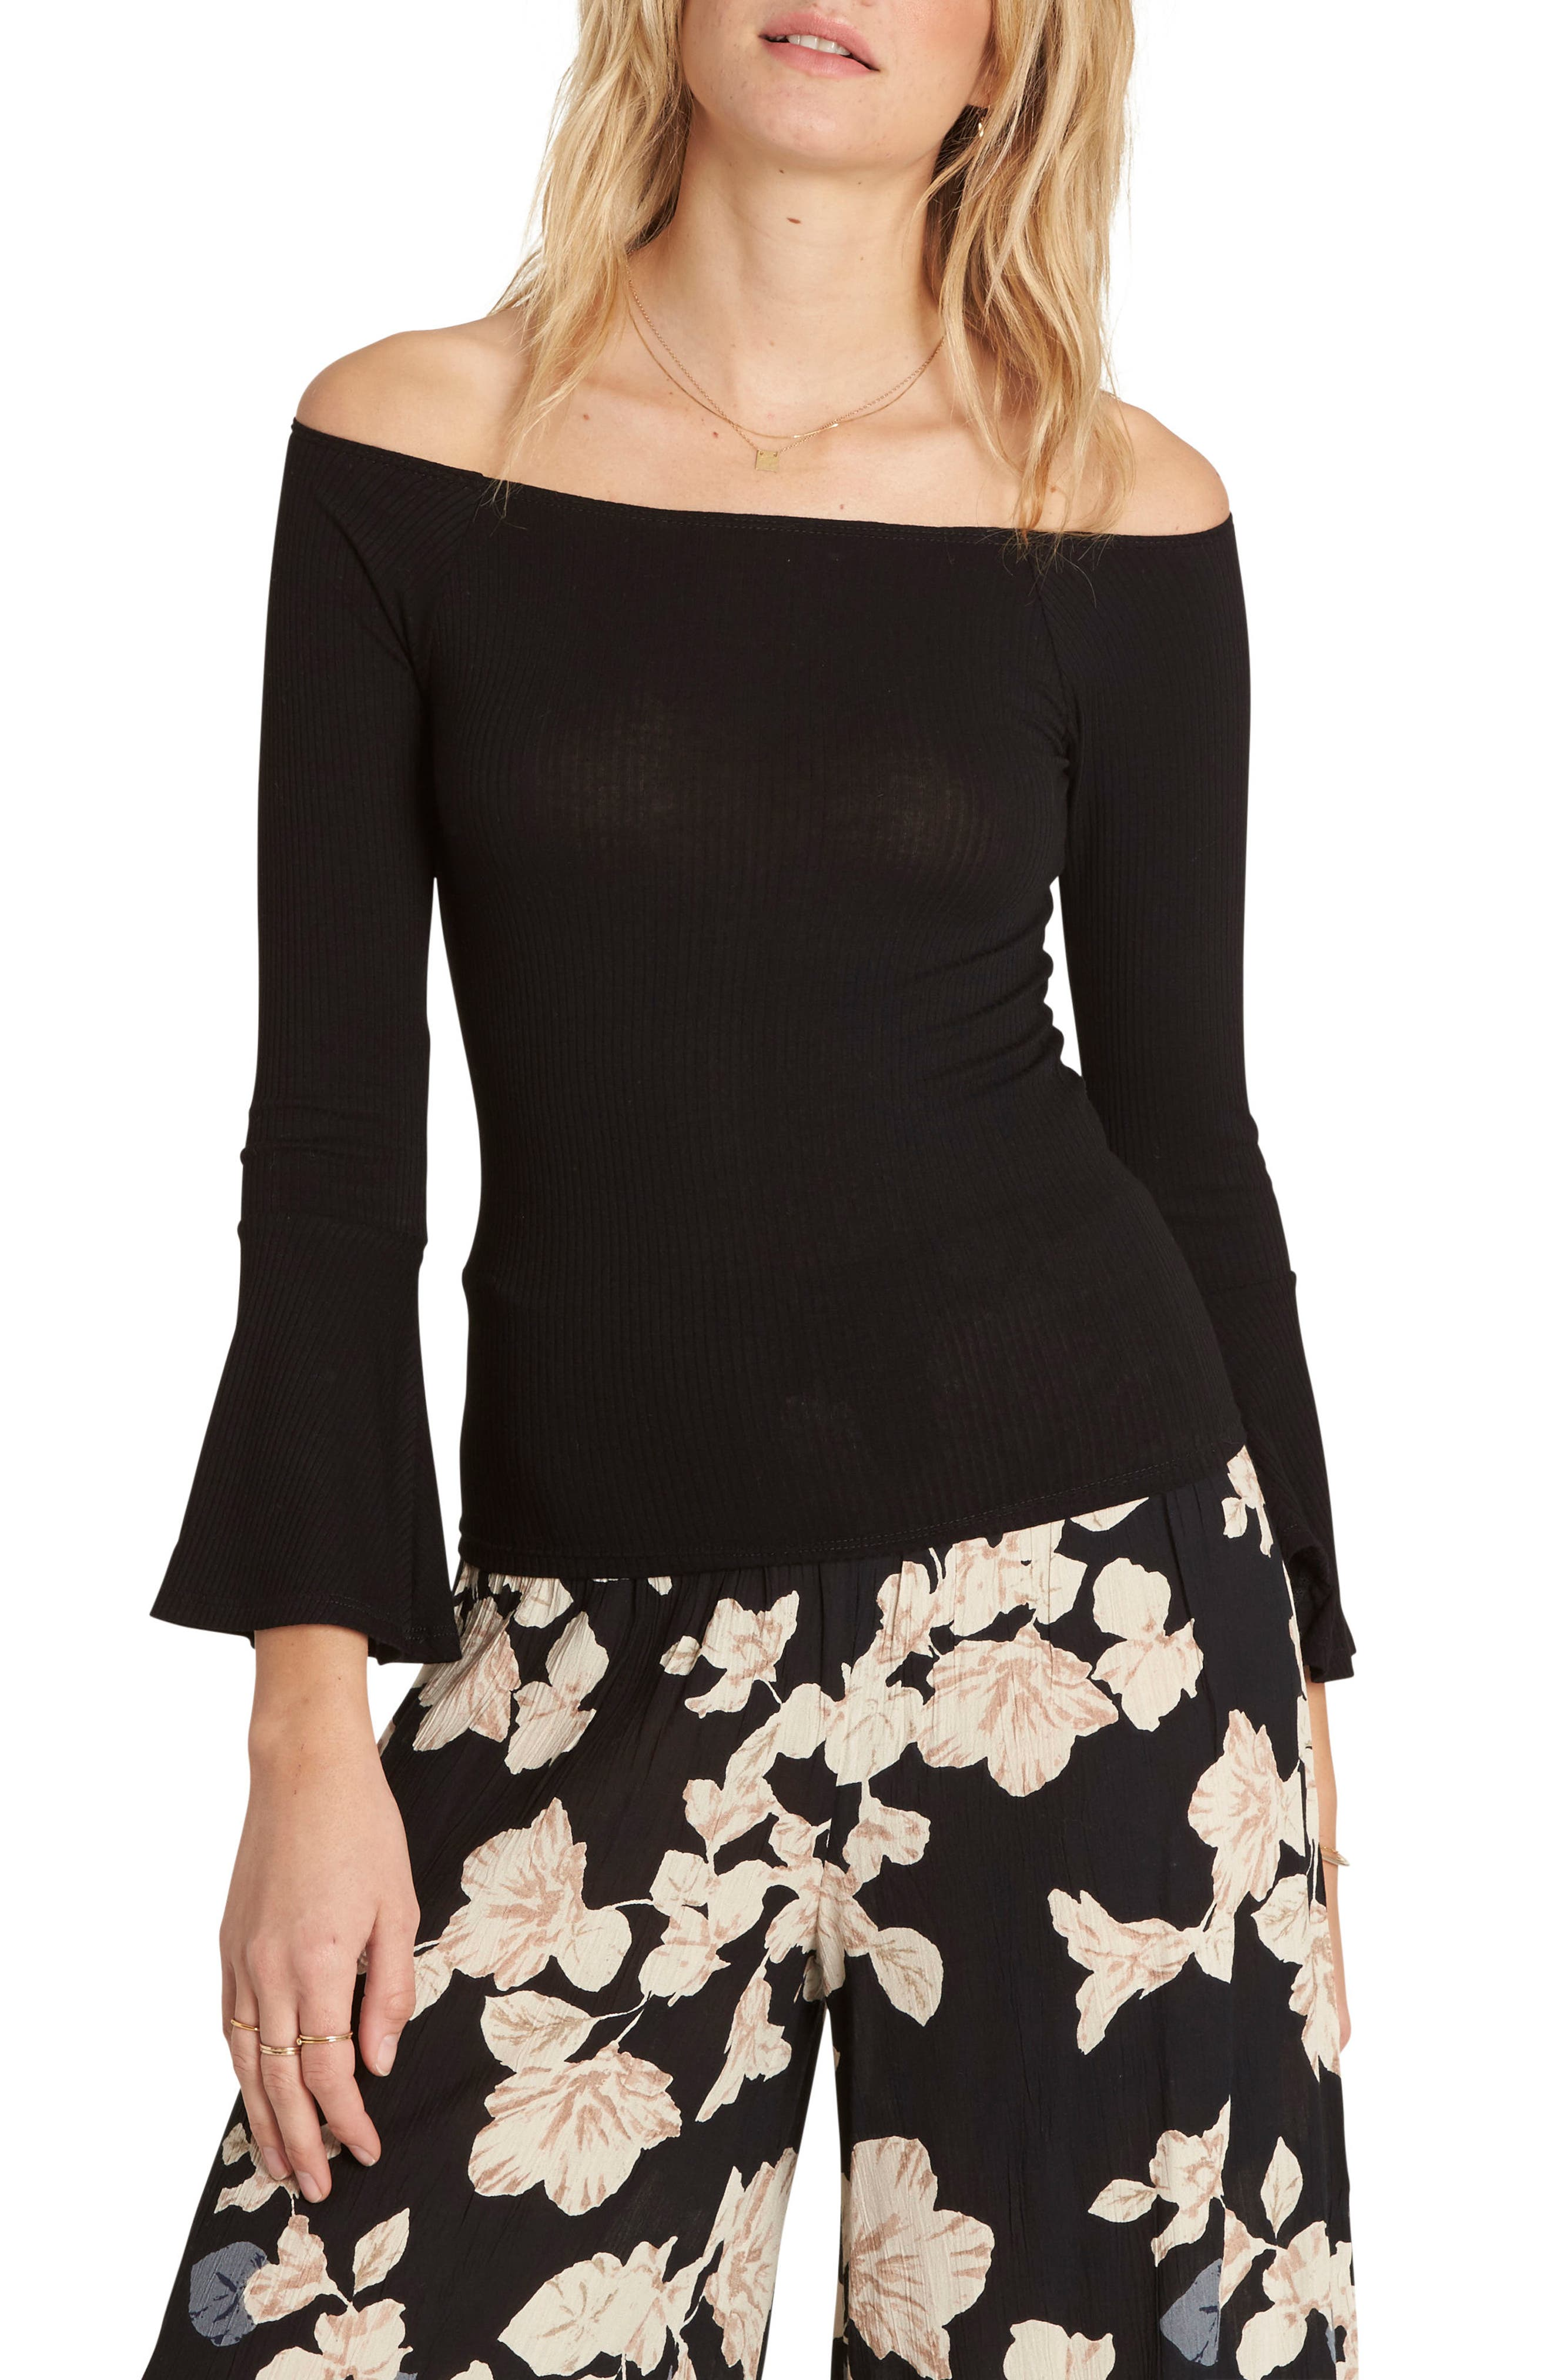 Out There Top,                         Main,                         color, 015